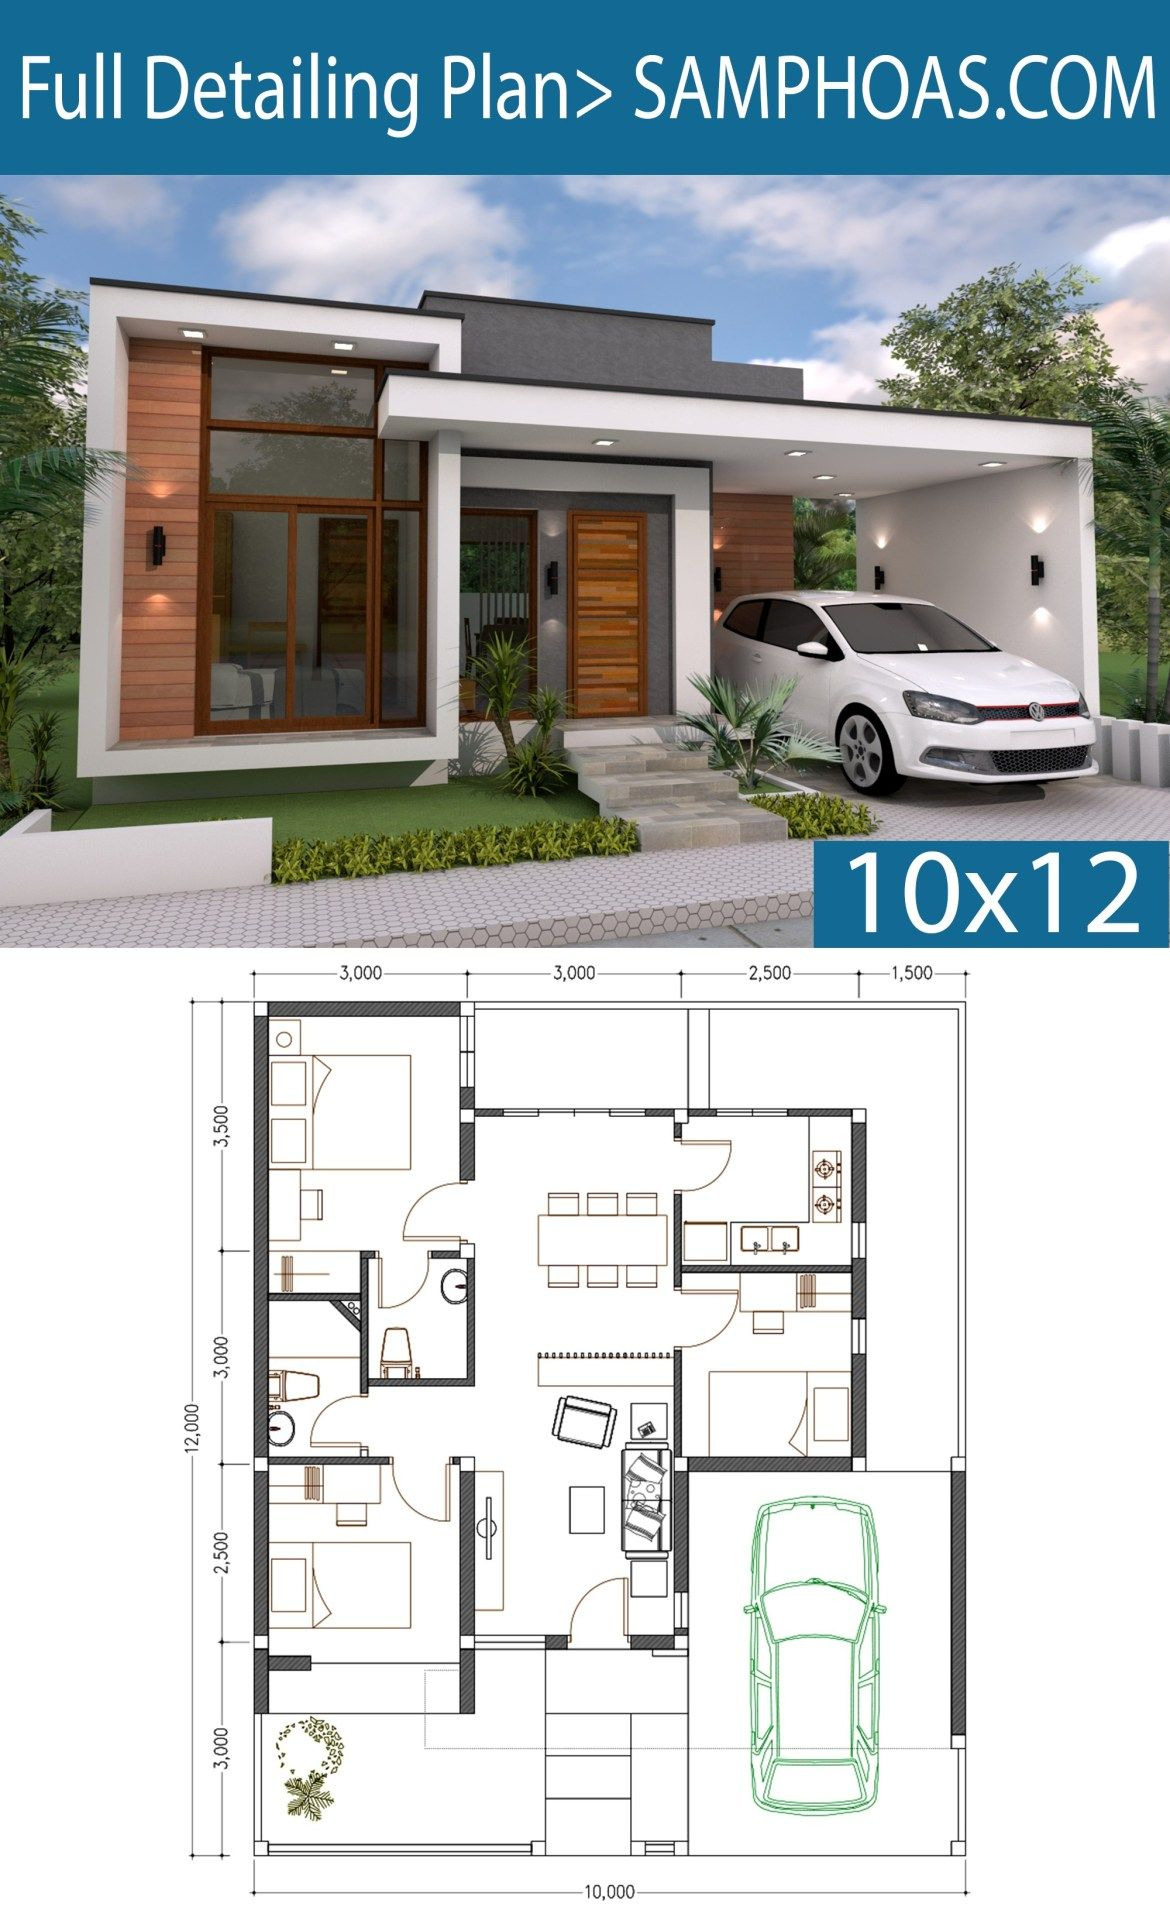 Architecture Simple House Designs Inspirational 3 Bedrooms Home Design Plan 10x12m